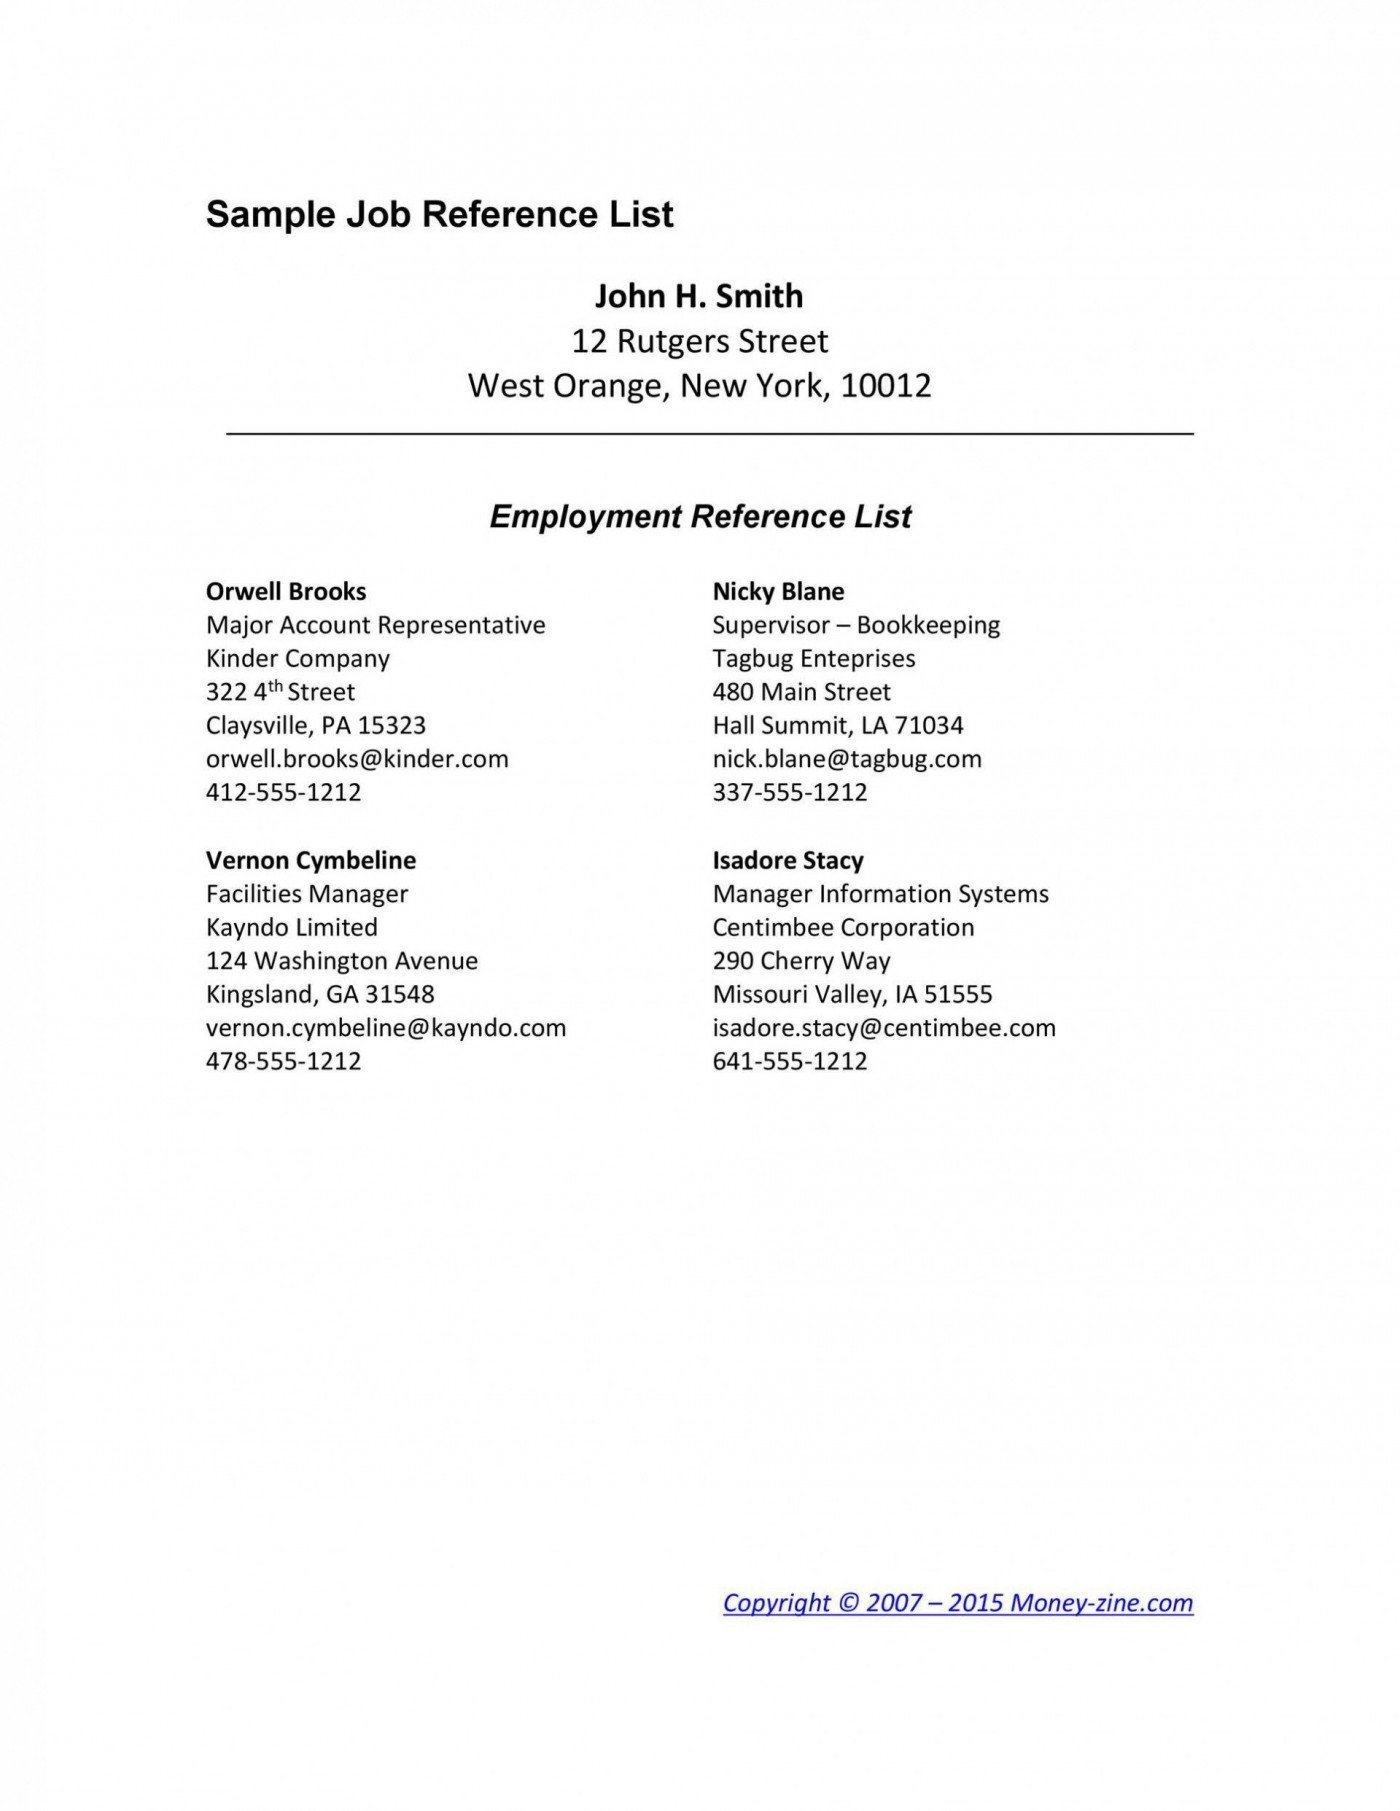 009 Stunning Resume Reference List Template Microsoft Word Concept 1400